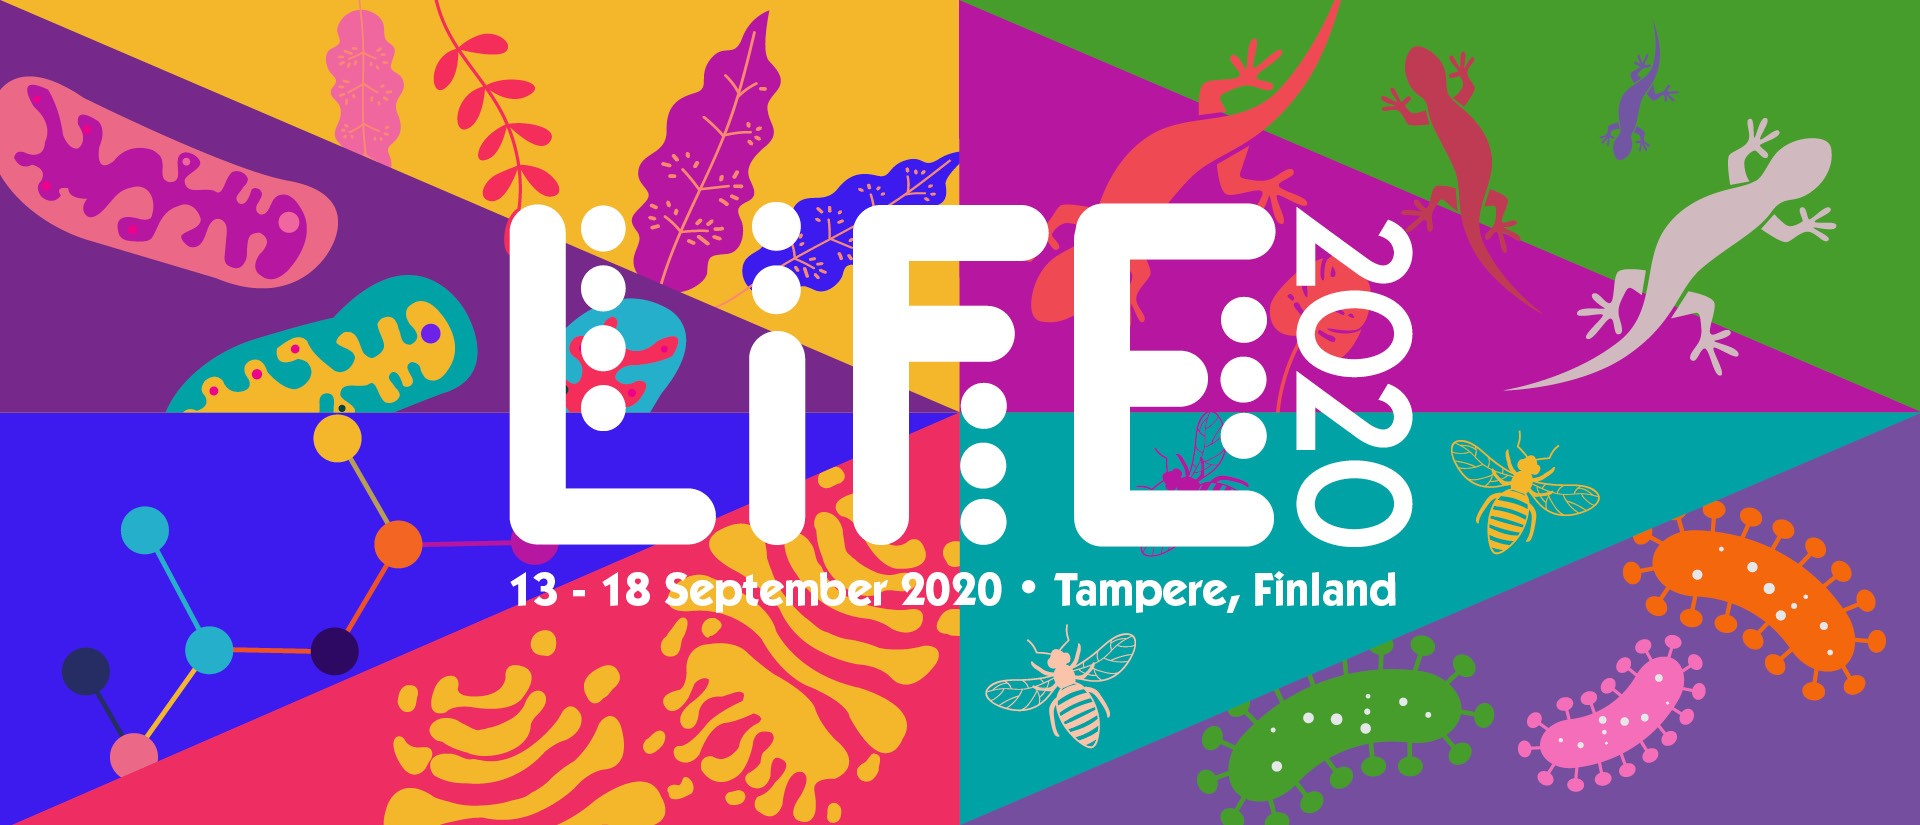 Life 2020 Conference